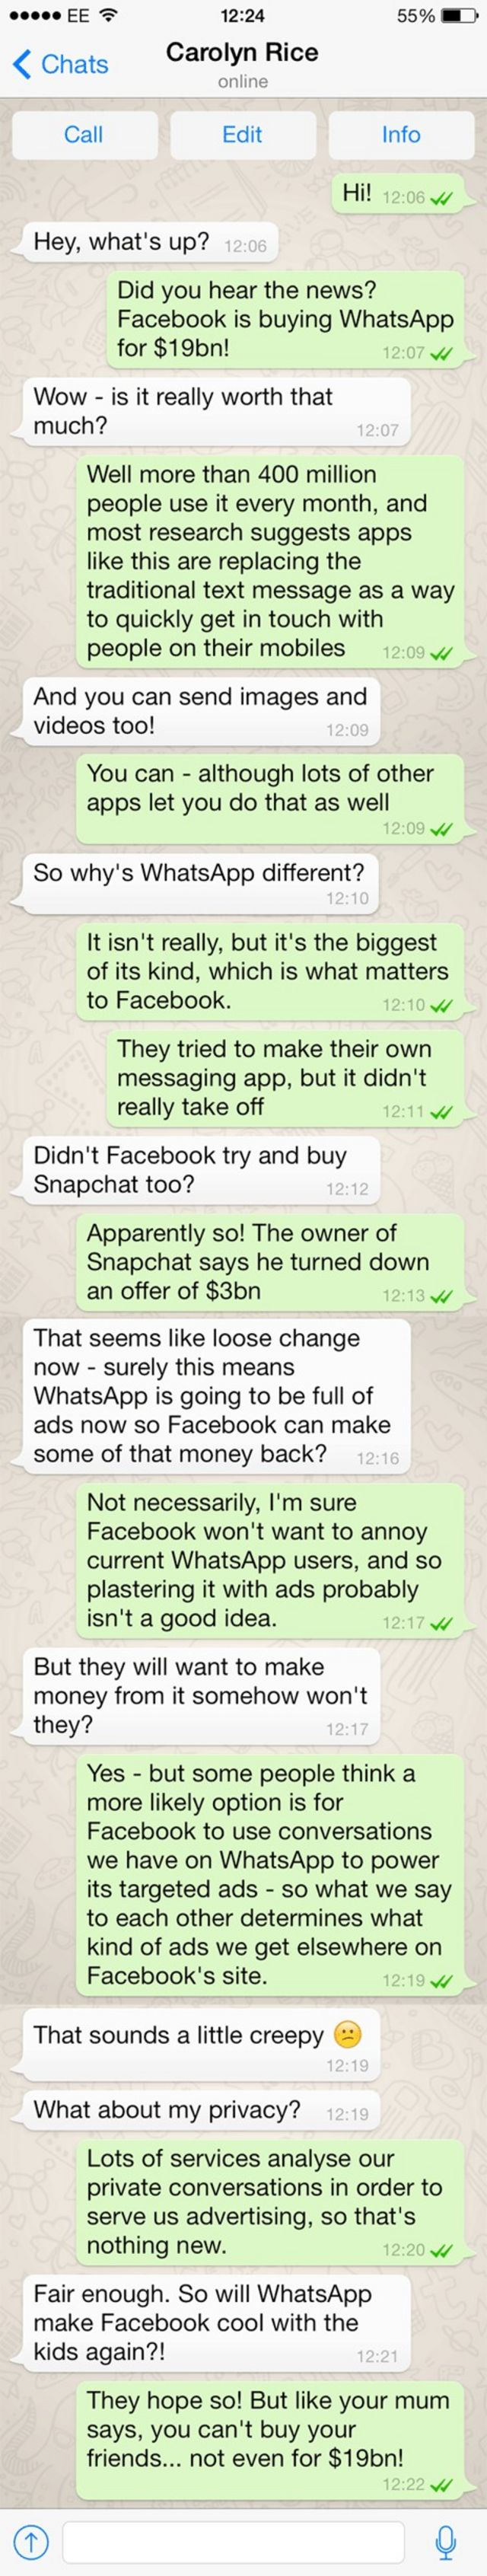 What next for WhatsApp?